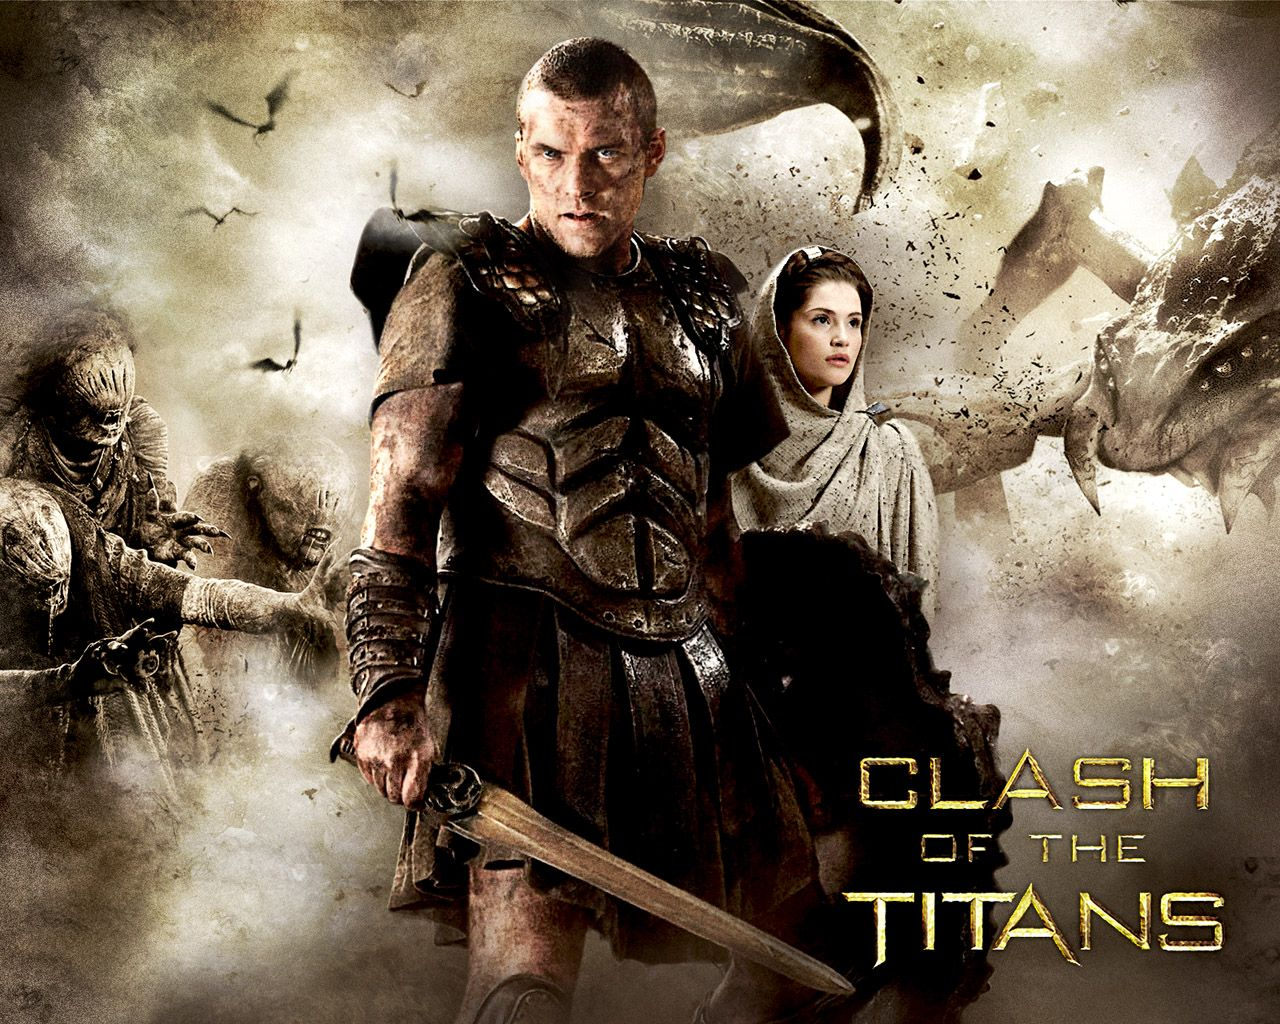 Clash Of The Titans Wallpapers Hd Wallpapers Base Clash Of The Titans Wrath Of The Titans Good Movies